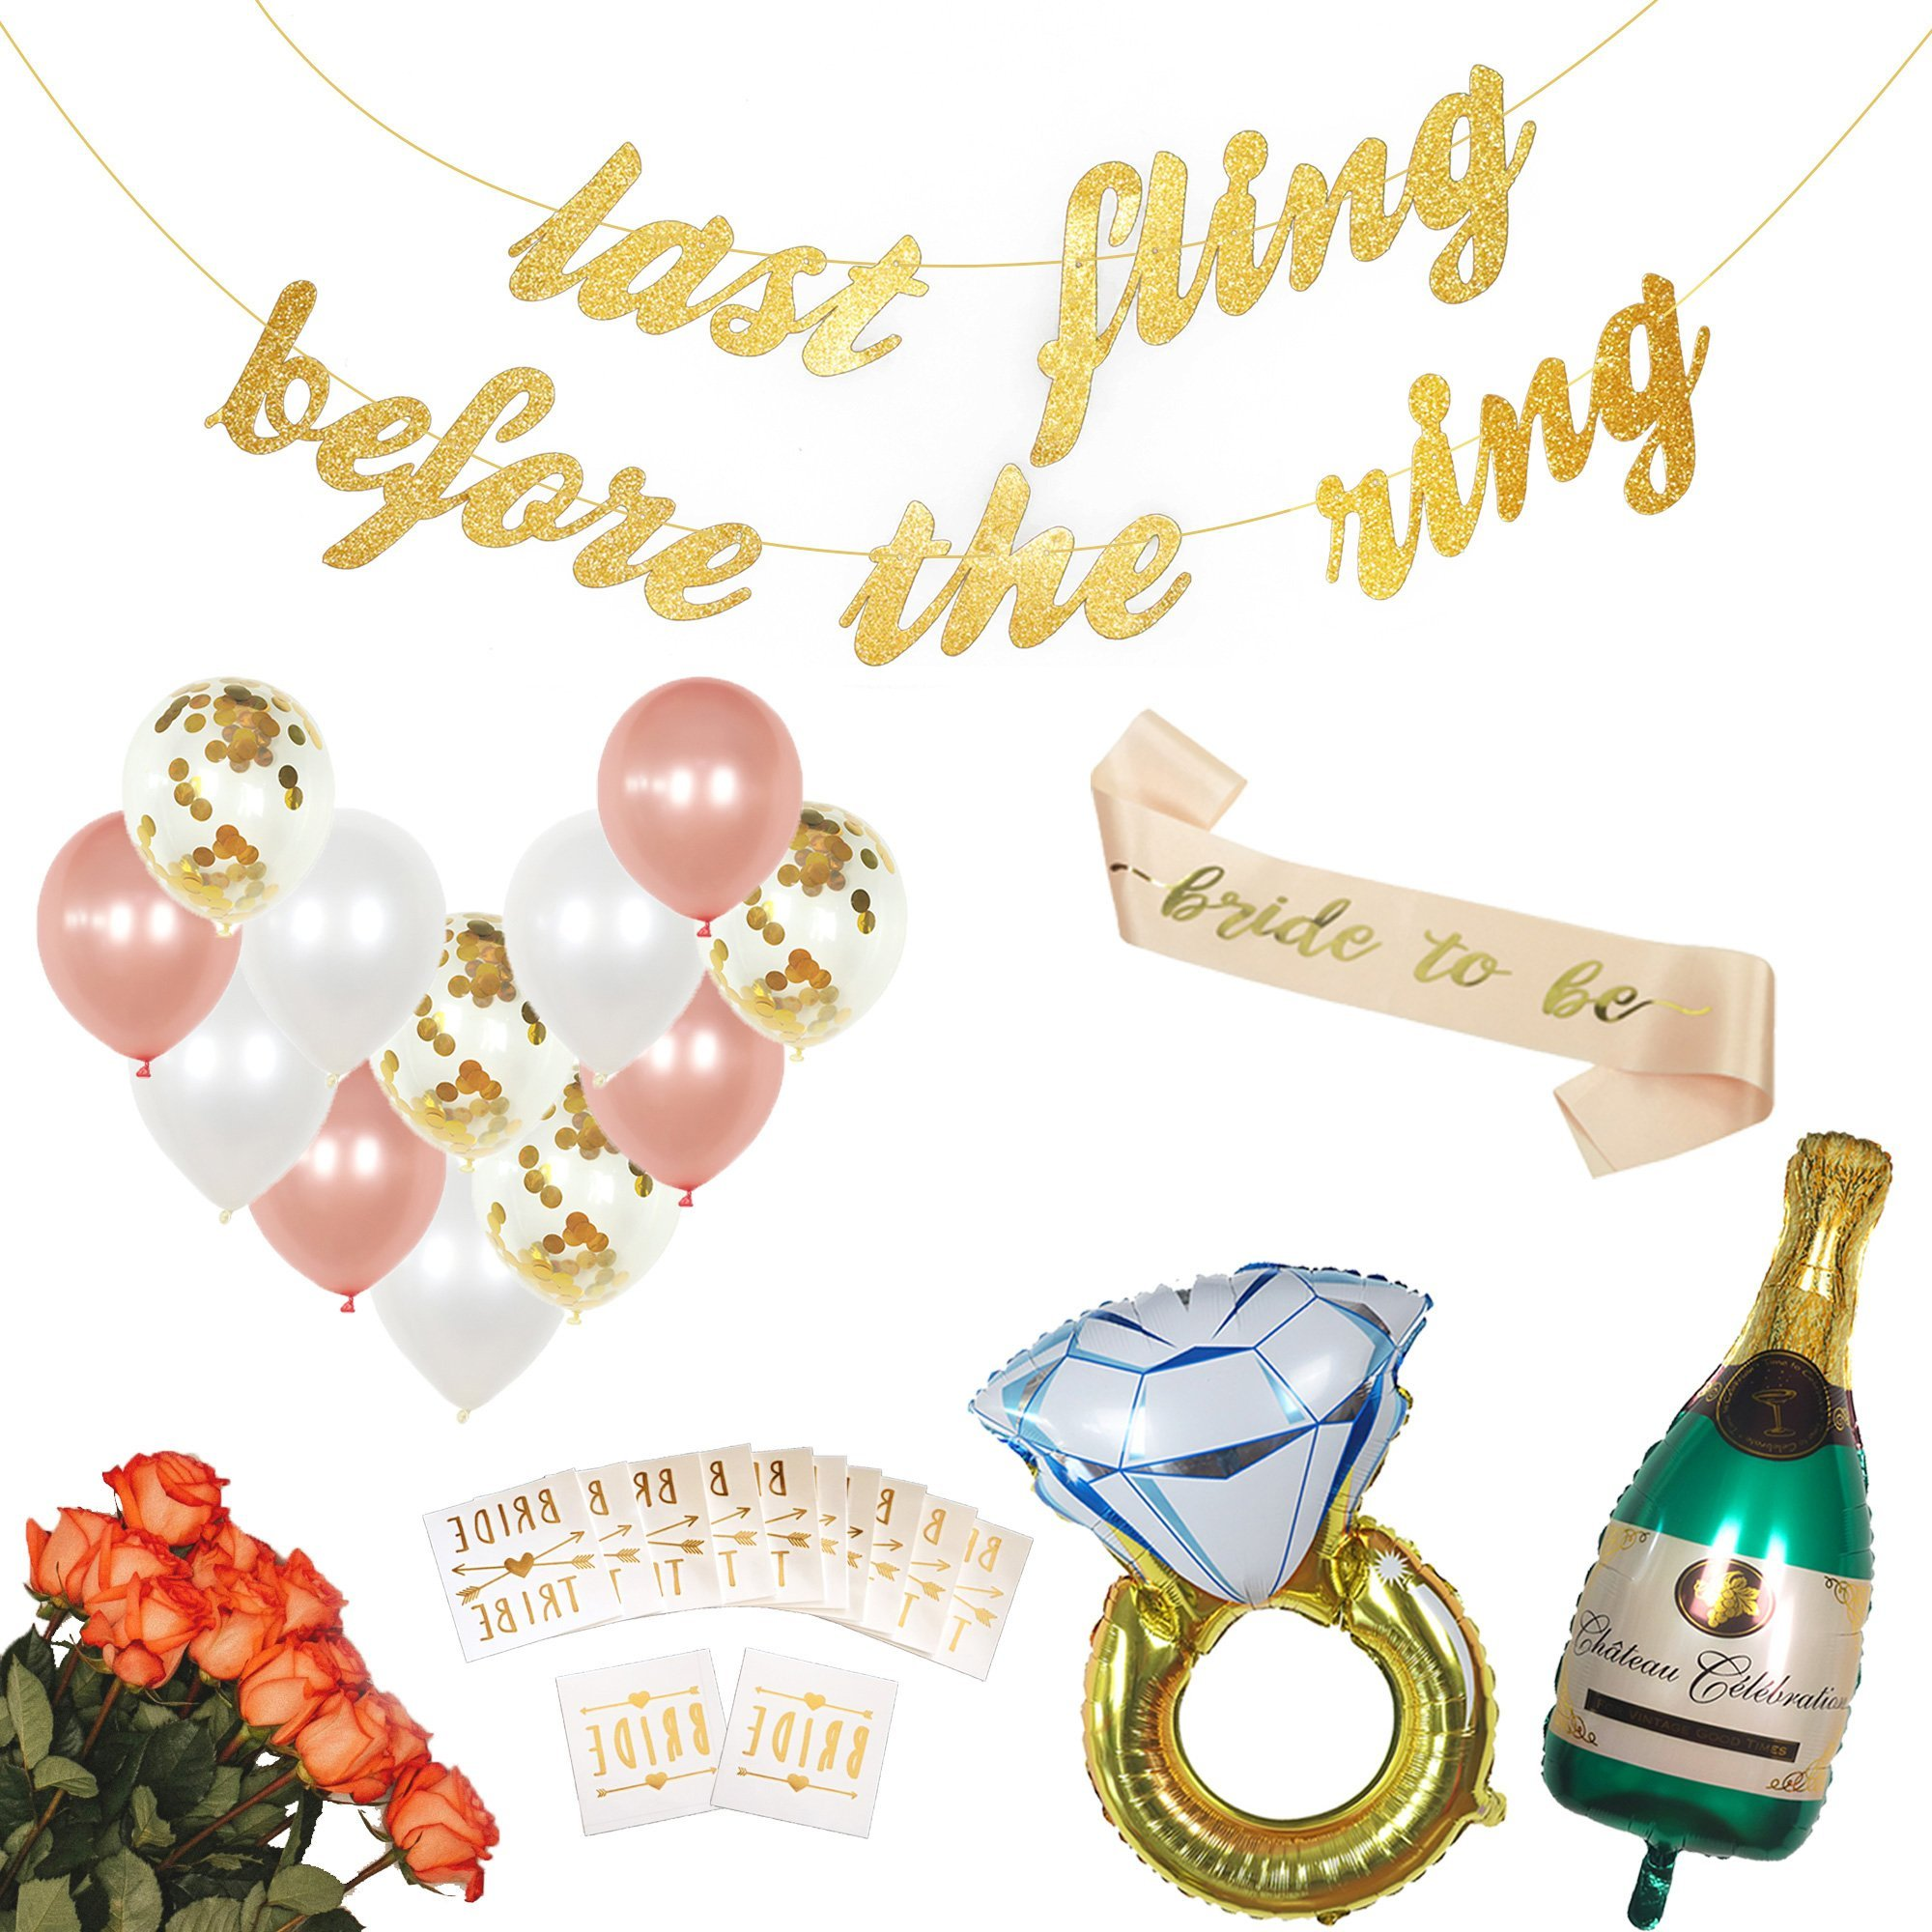 Bachelorette Party Decorations Kit | Bridal Shower Supplies | Rose Gold Bride to Be Sash, Bride Tribe Tattoos, Champagne & Ring Foil Balloon, Confetti Balloons, Bachelorette Party Banner Favors by The Final Rose